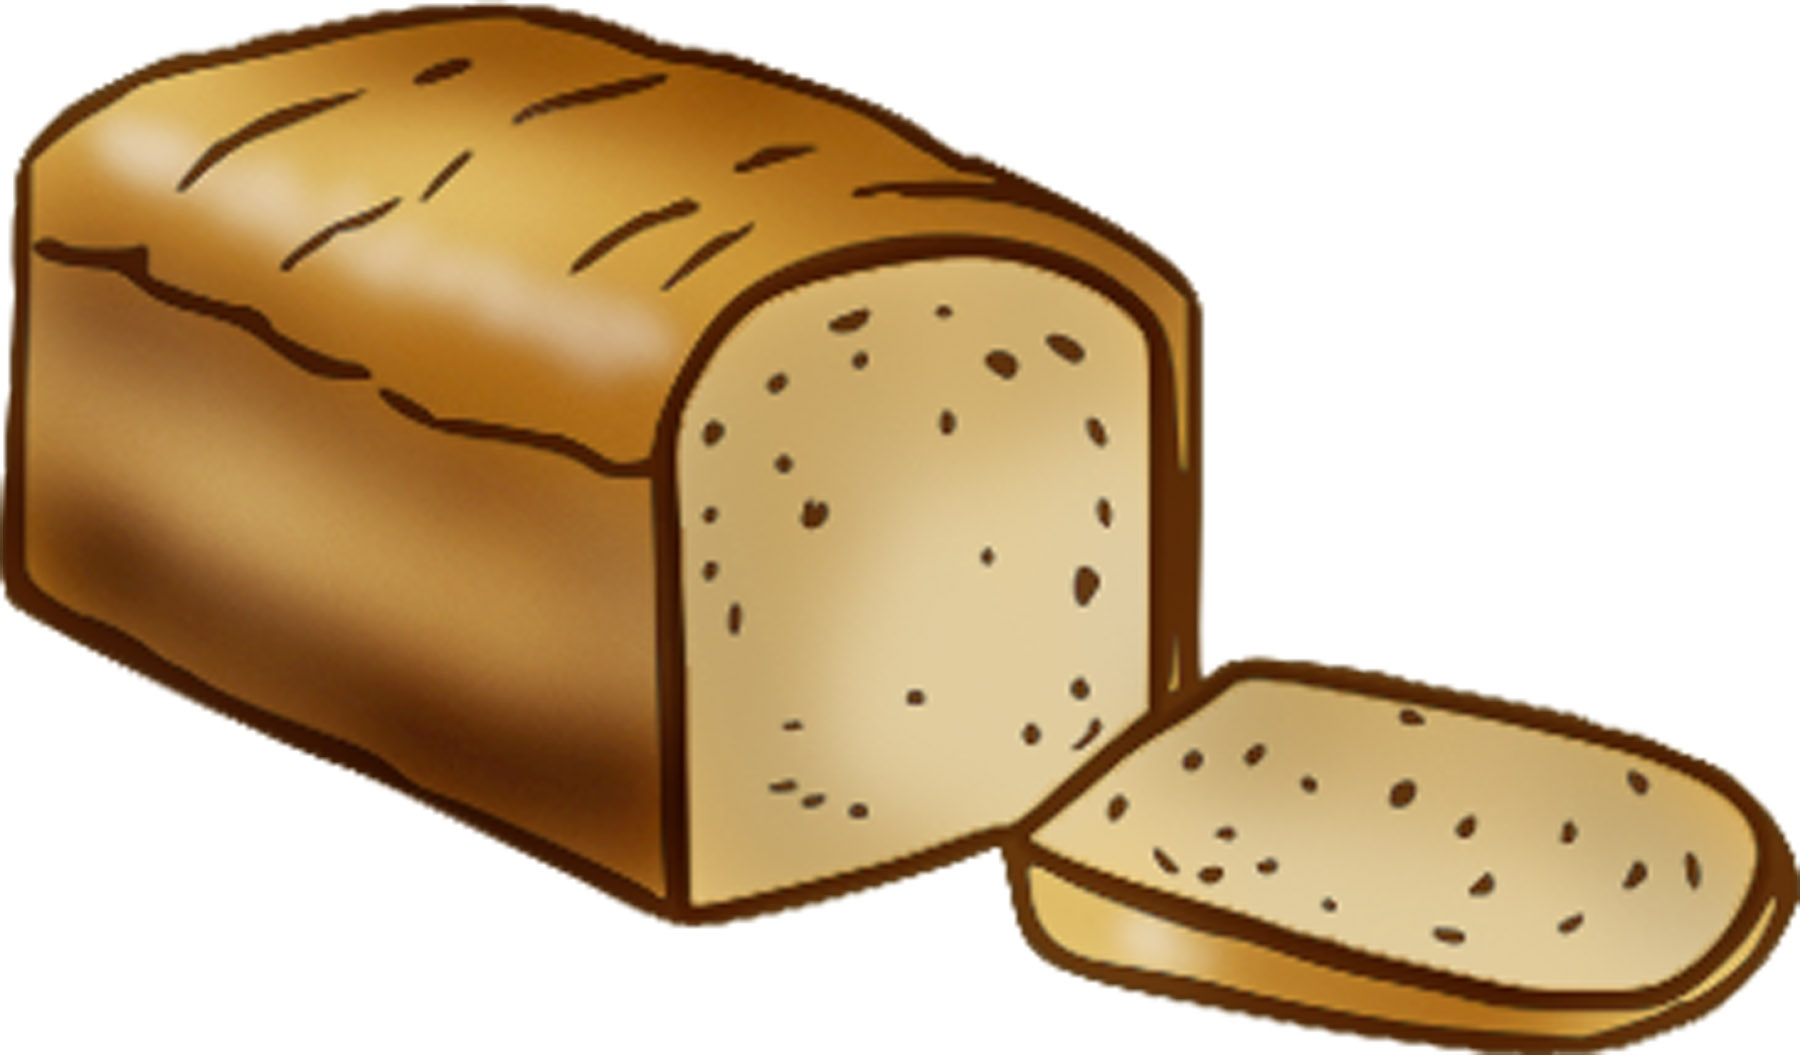 Bread clipart loaf bread. Unique of collection digital